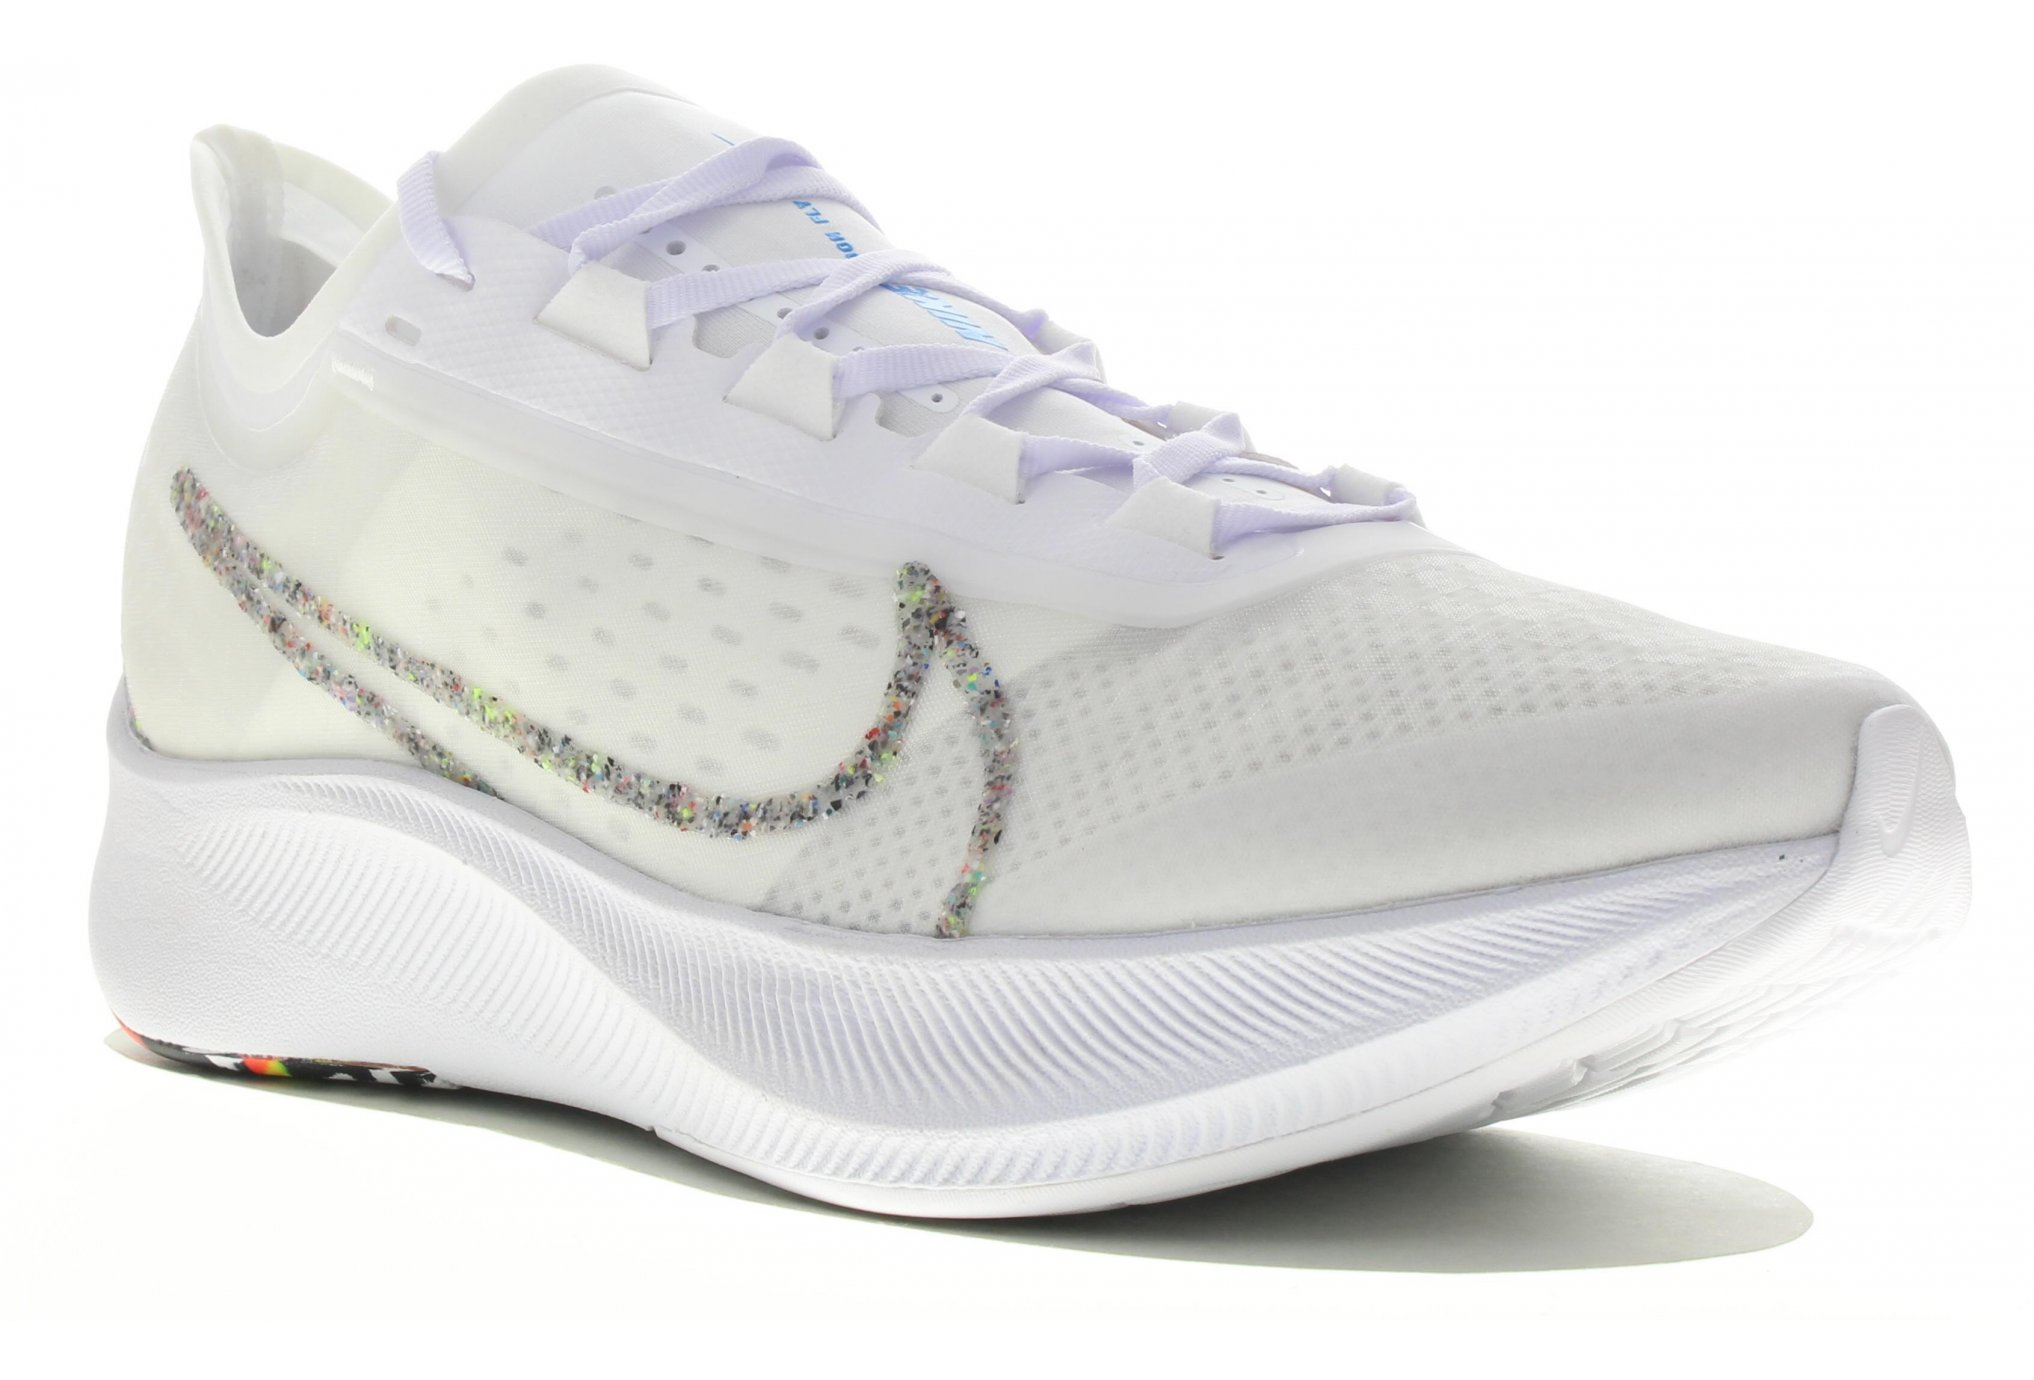 Nike Zoom Fly 3 AW Chaussures homme